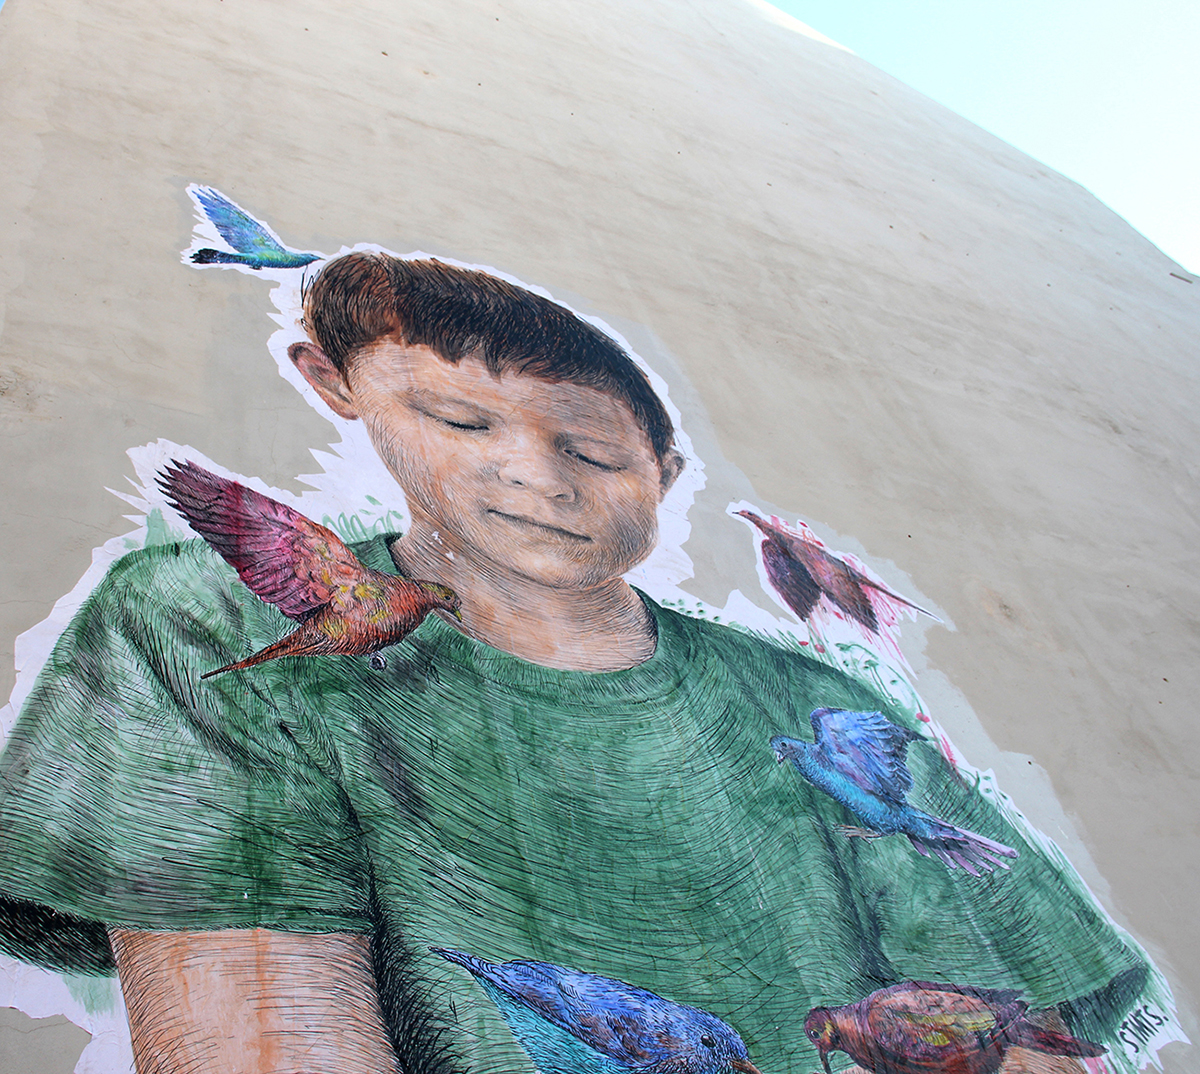 stmts-amity-new-mural-in-athens-03